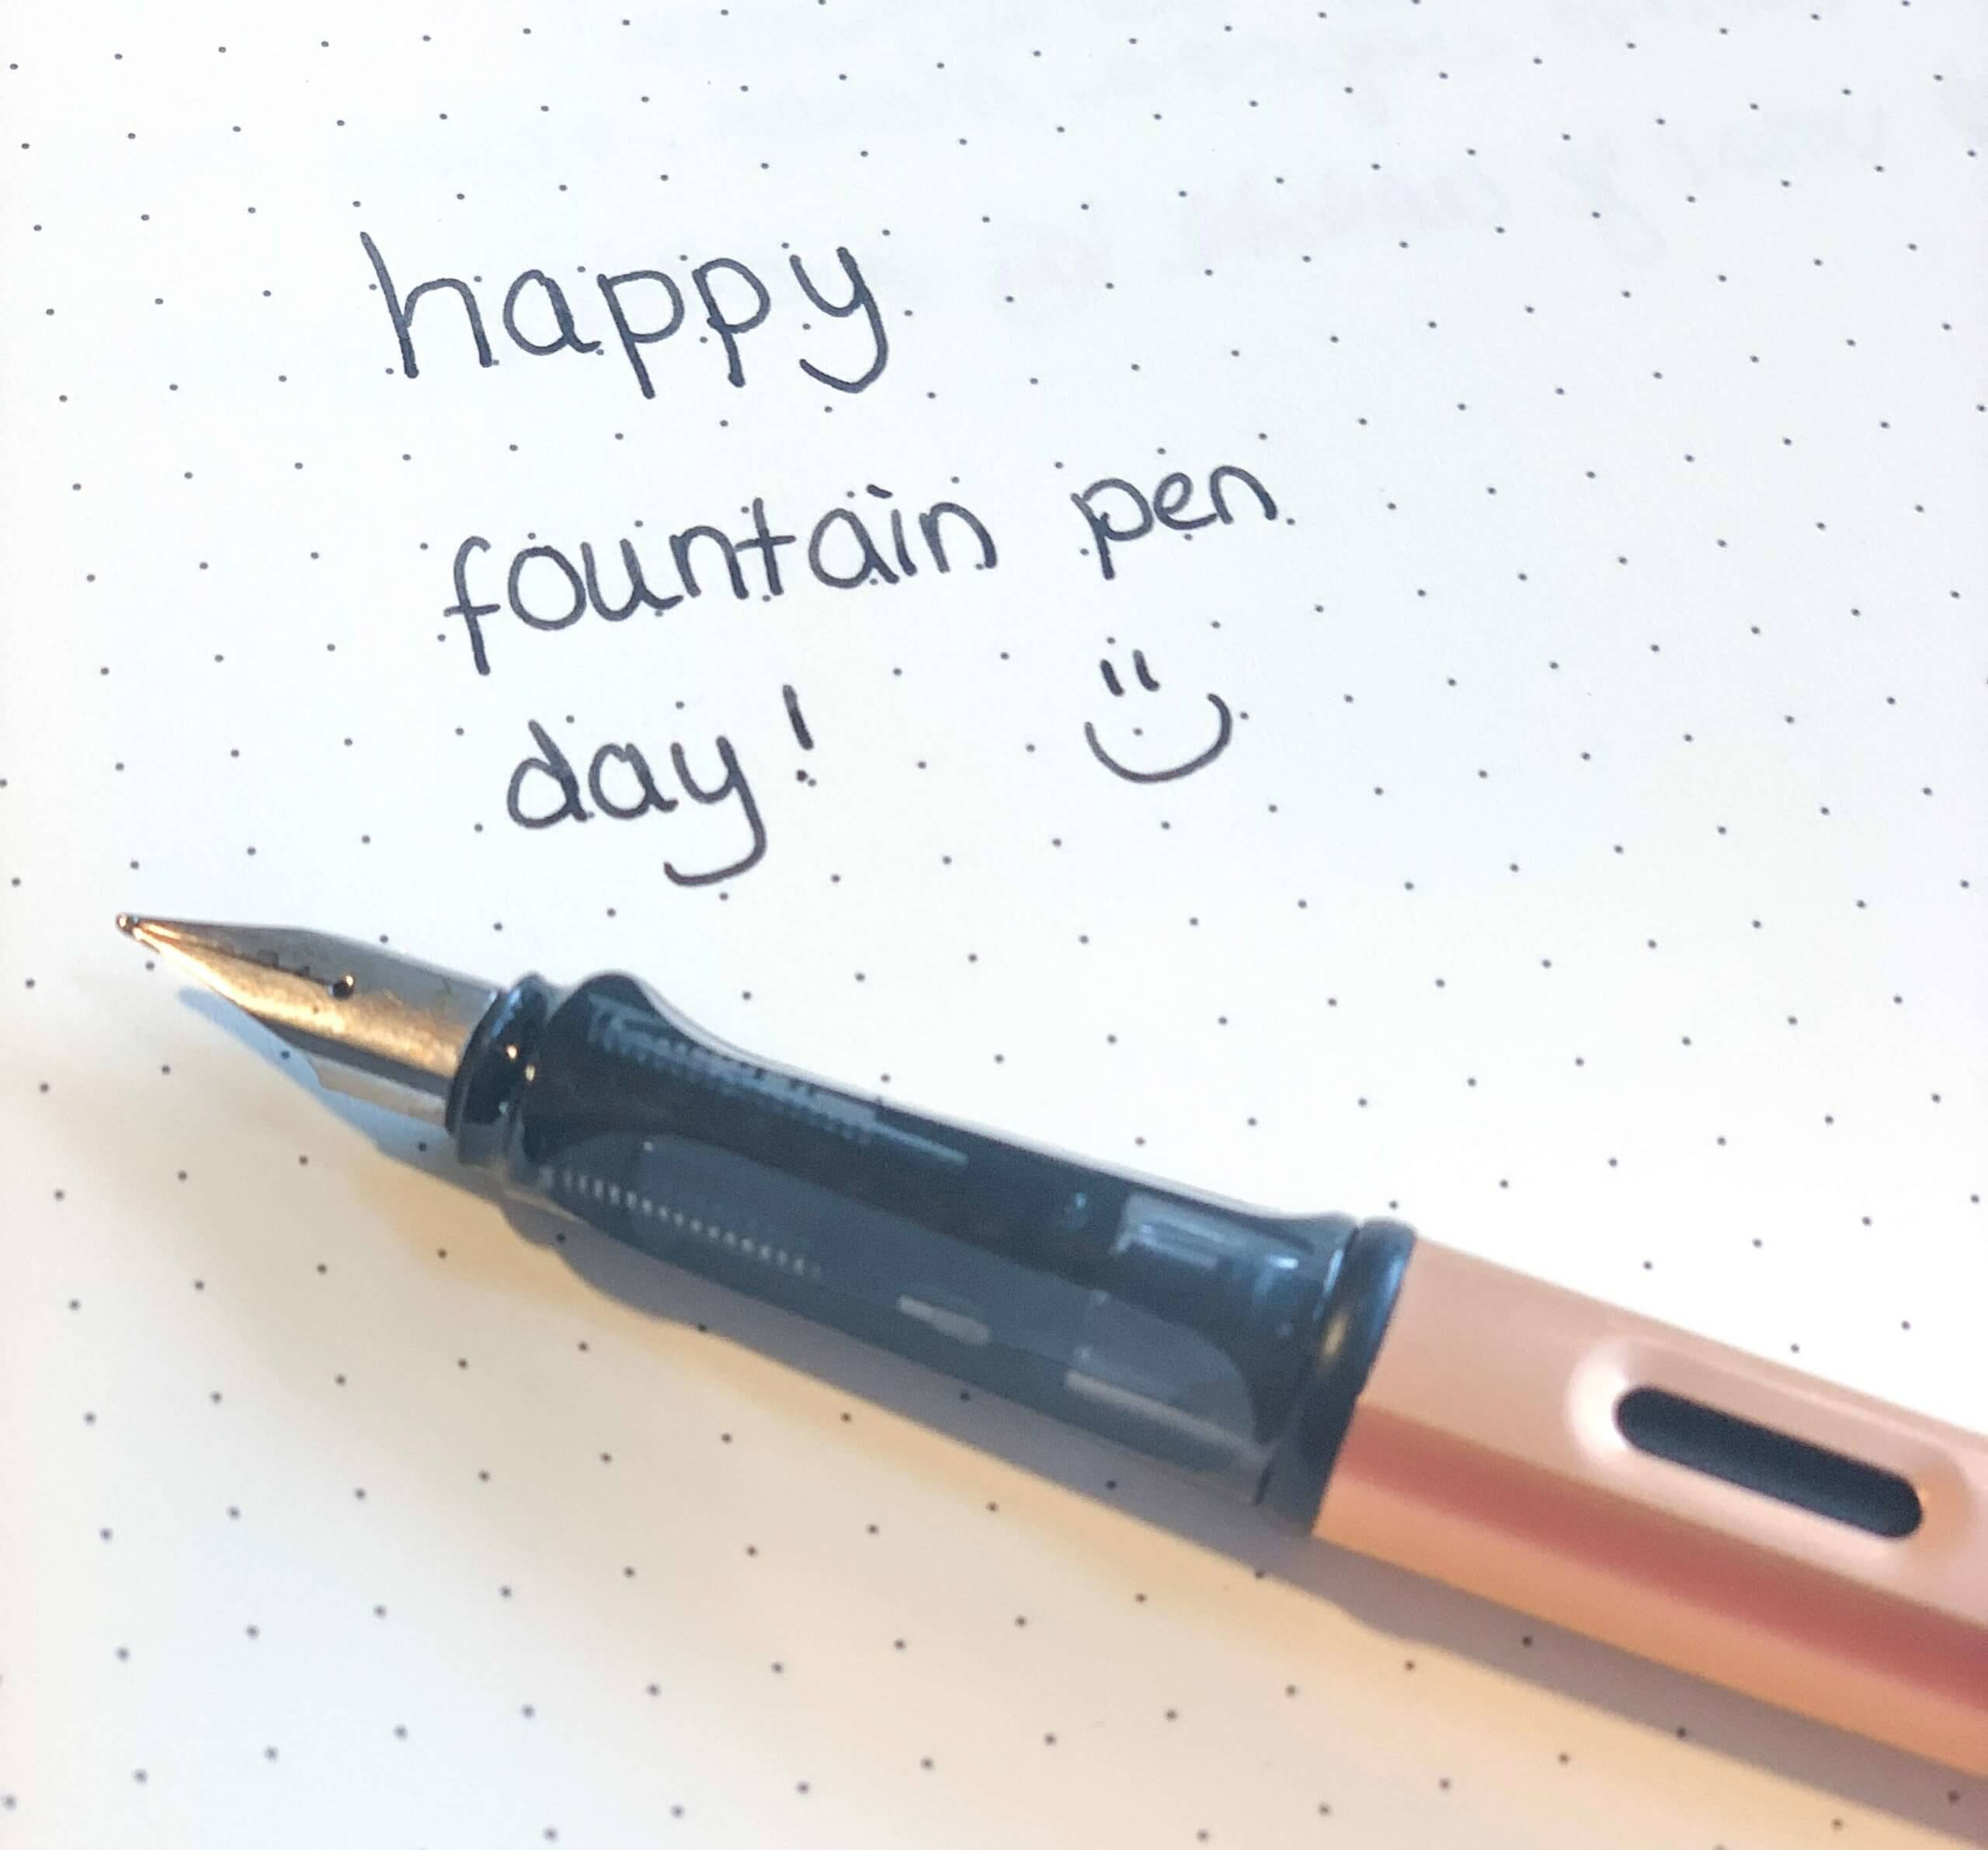 Fountain pen day – dag van de vulpen